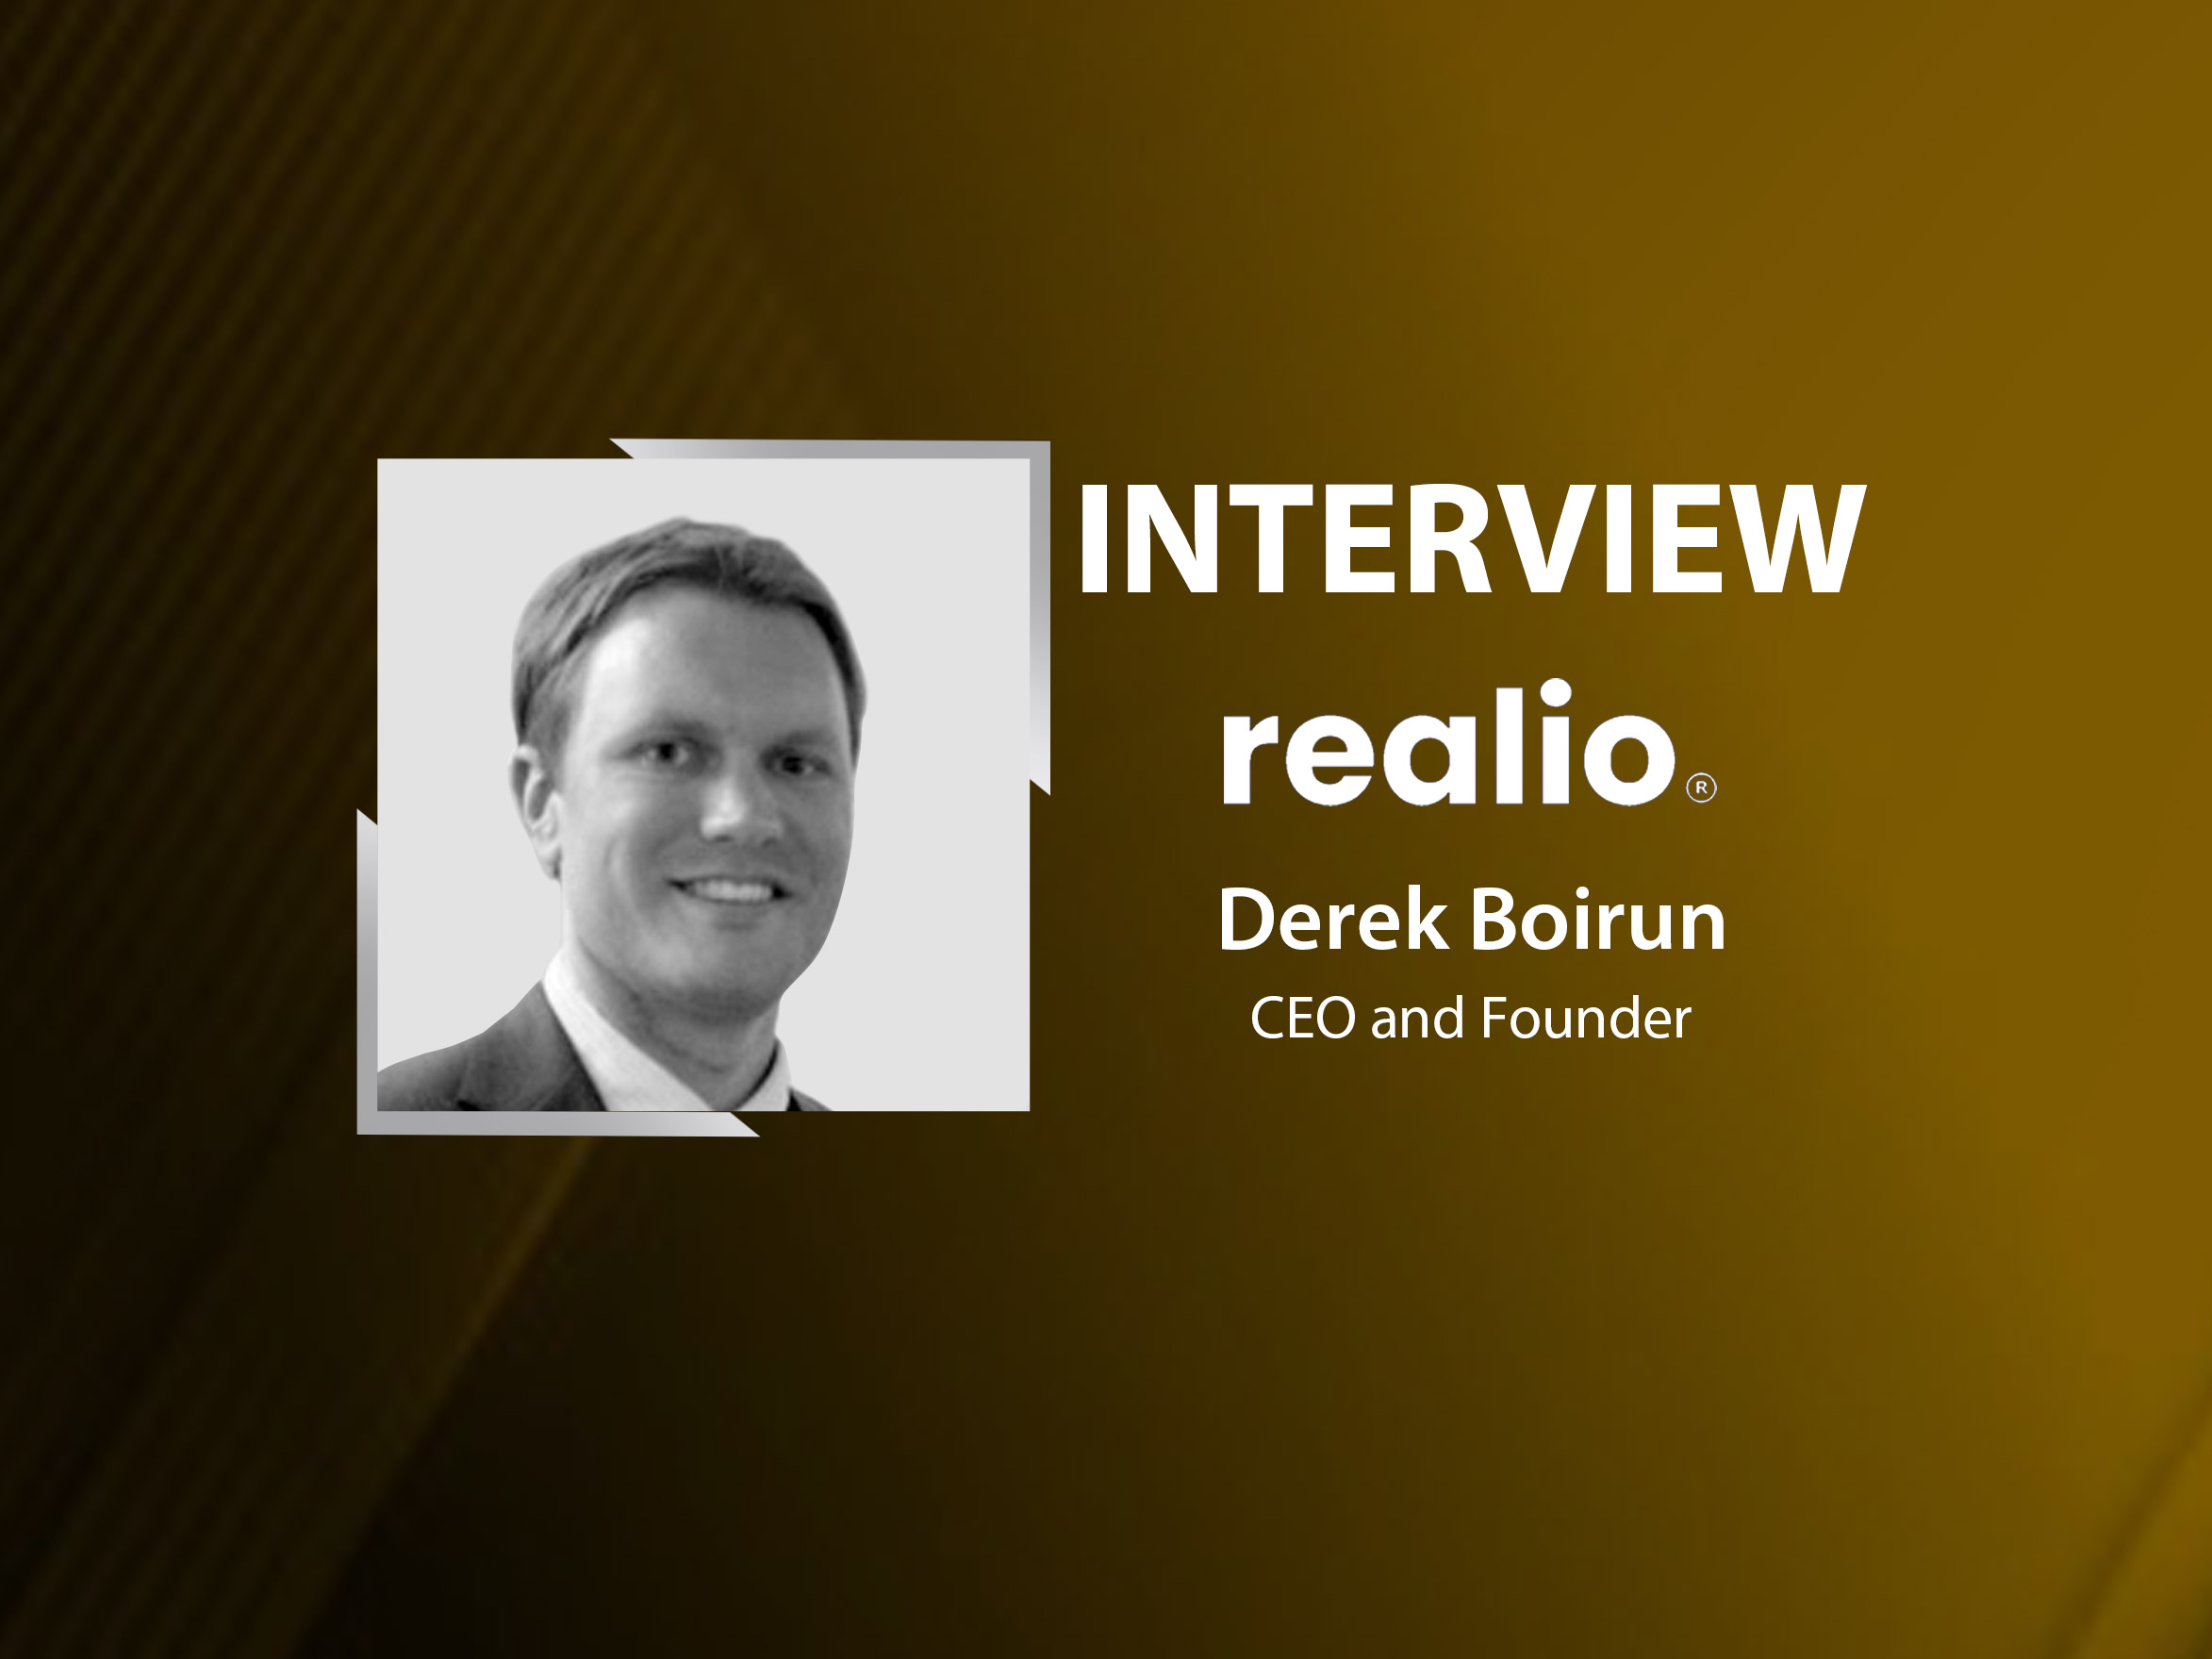 GlobalFintechSeries Interview with Derek Boirun, CEO and Founder at Realio